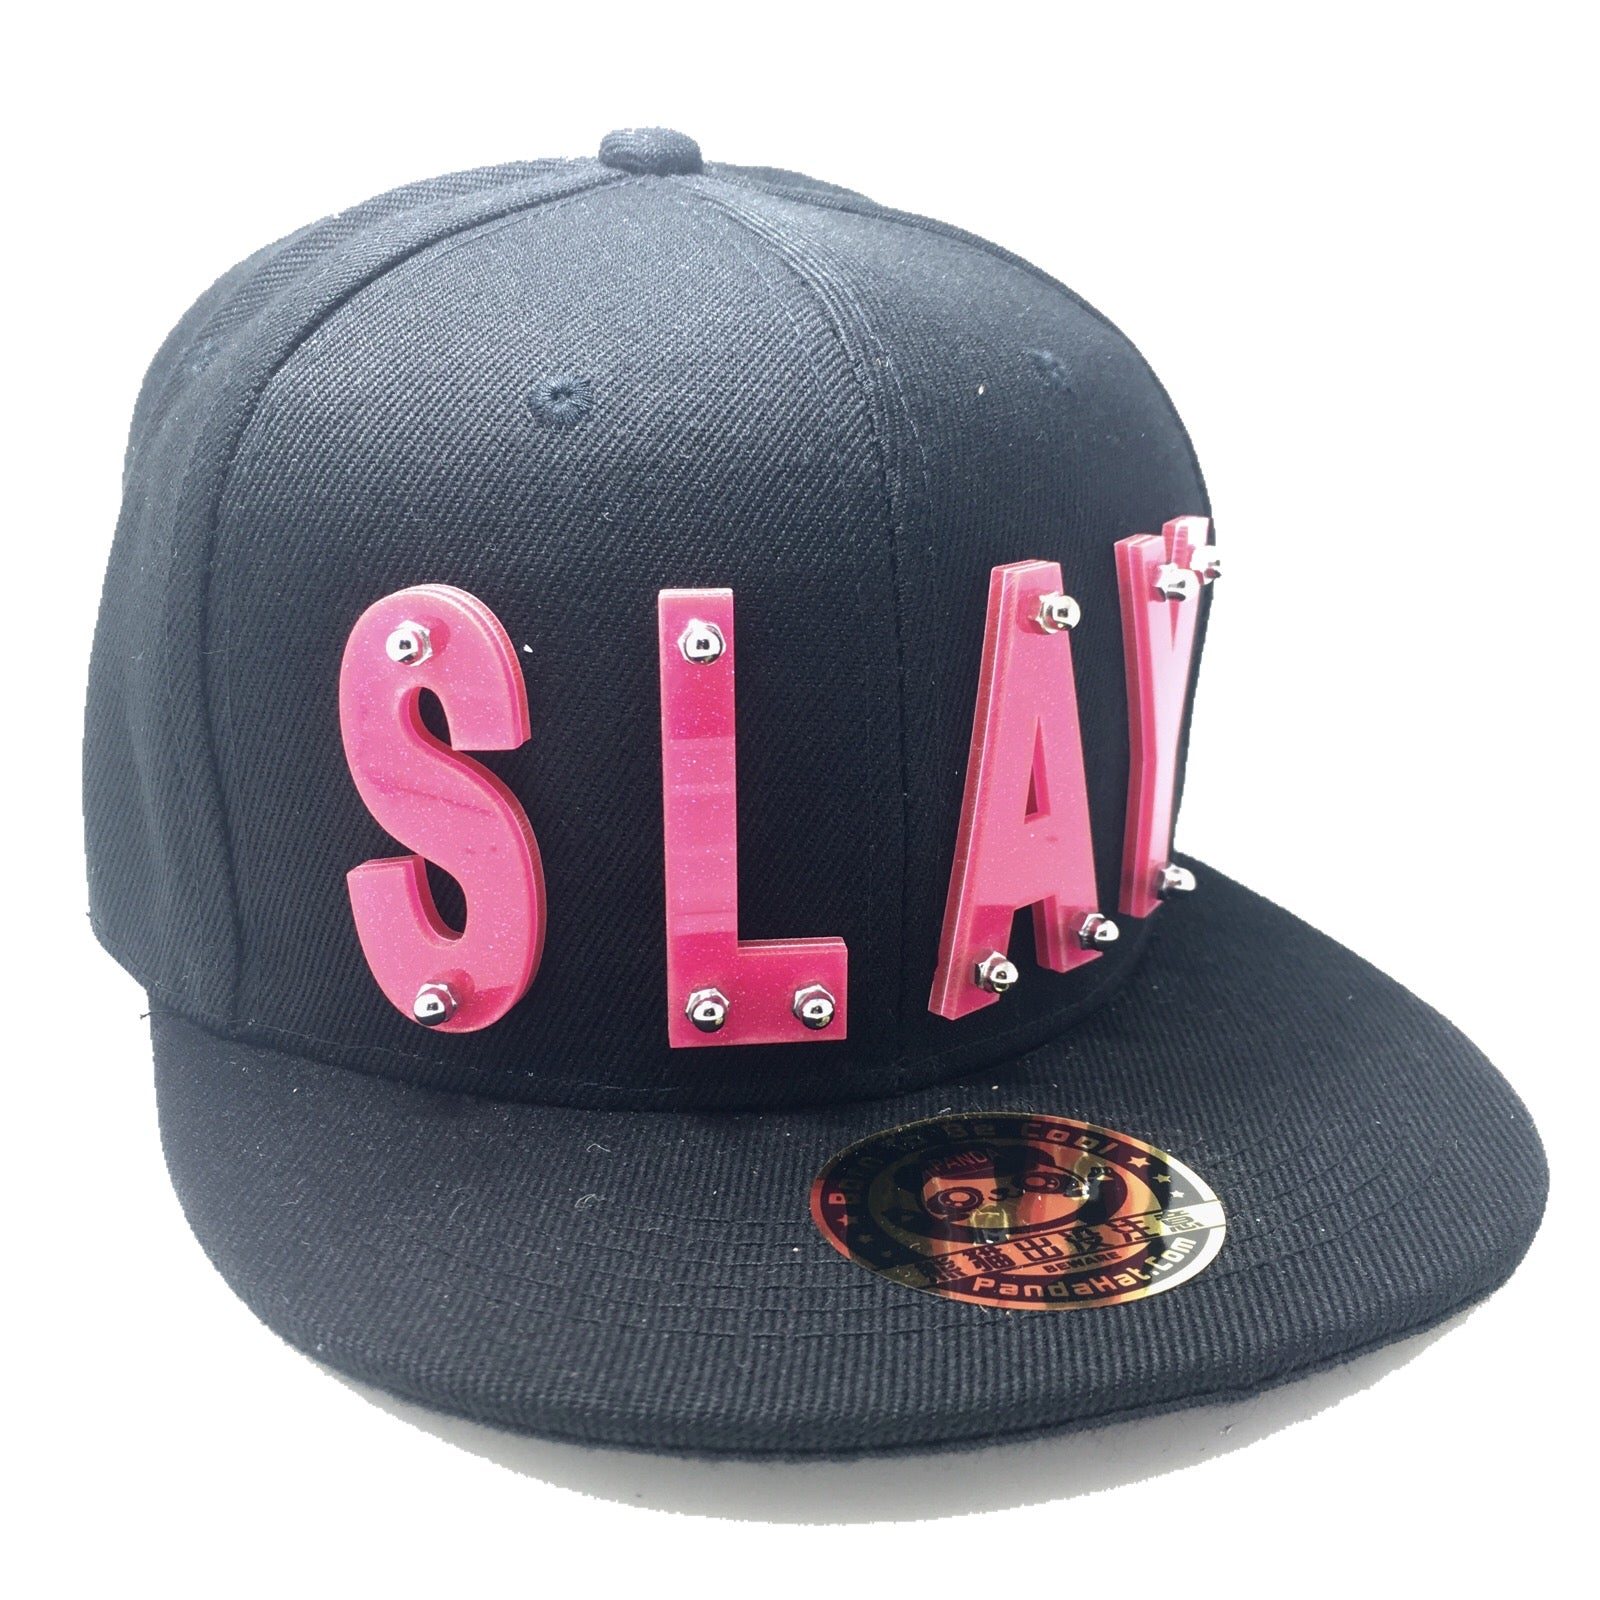 SLAY HAT RED · SLAY HAT IN BLACK ... 5bdc72029fb